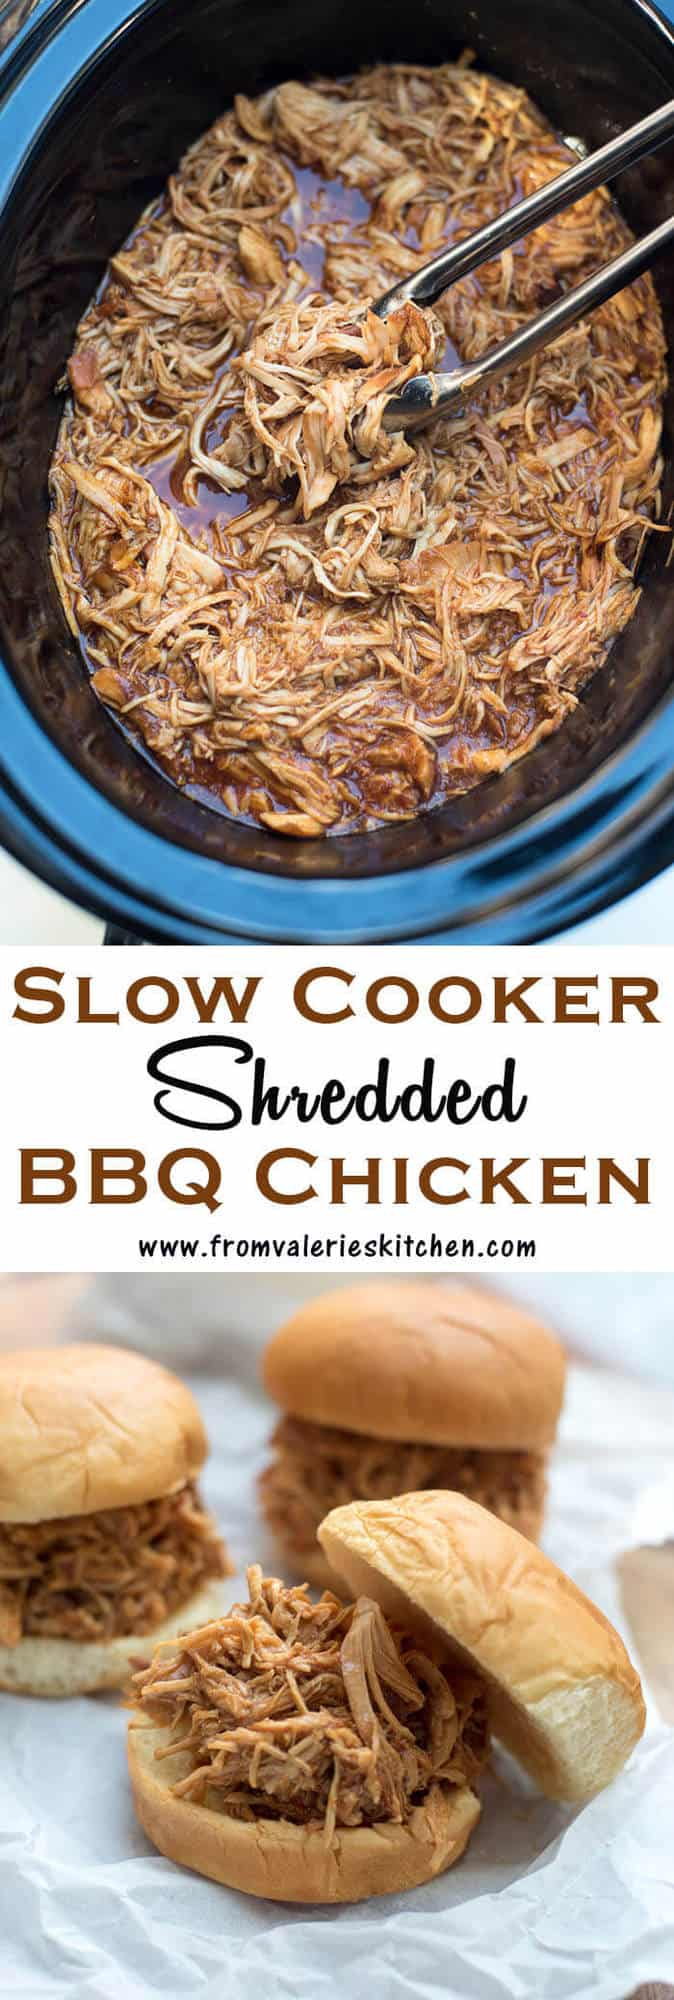 This Slow Cooker Shredded BBQ Chicken is an incredibly easy way to create tender, shredded BBQ chicken that can be used in a variety different meals.